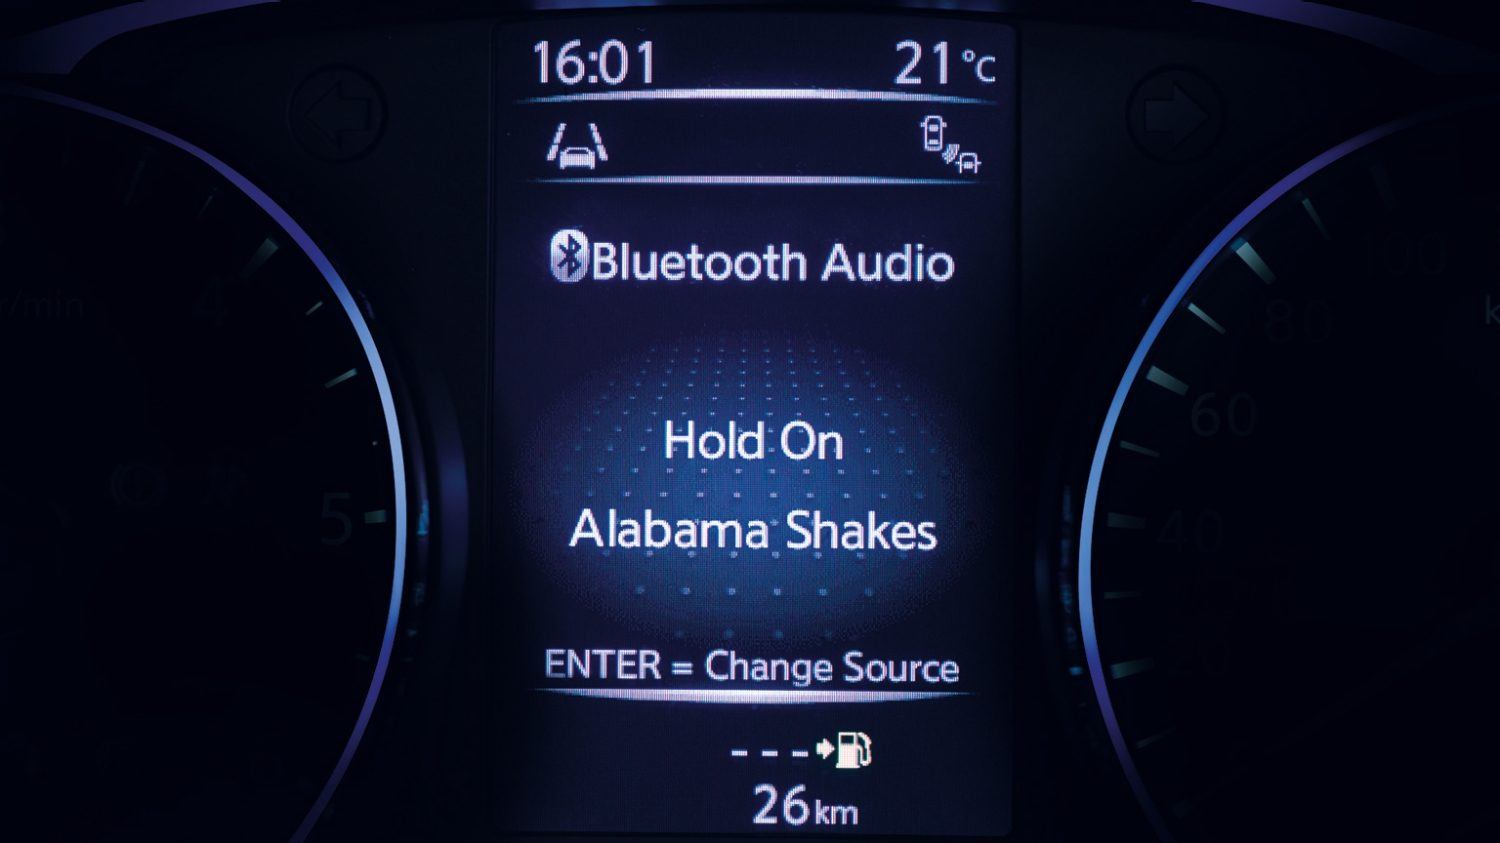 Ausstattung der SUV Modelle – Audio Streaming per Bluetooth | NISSAN QASHQAI